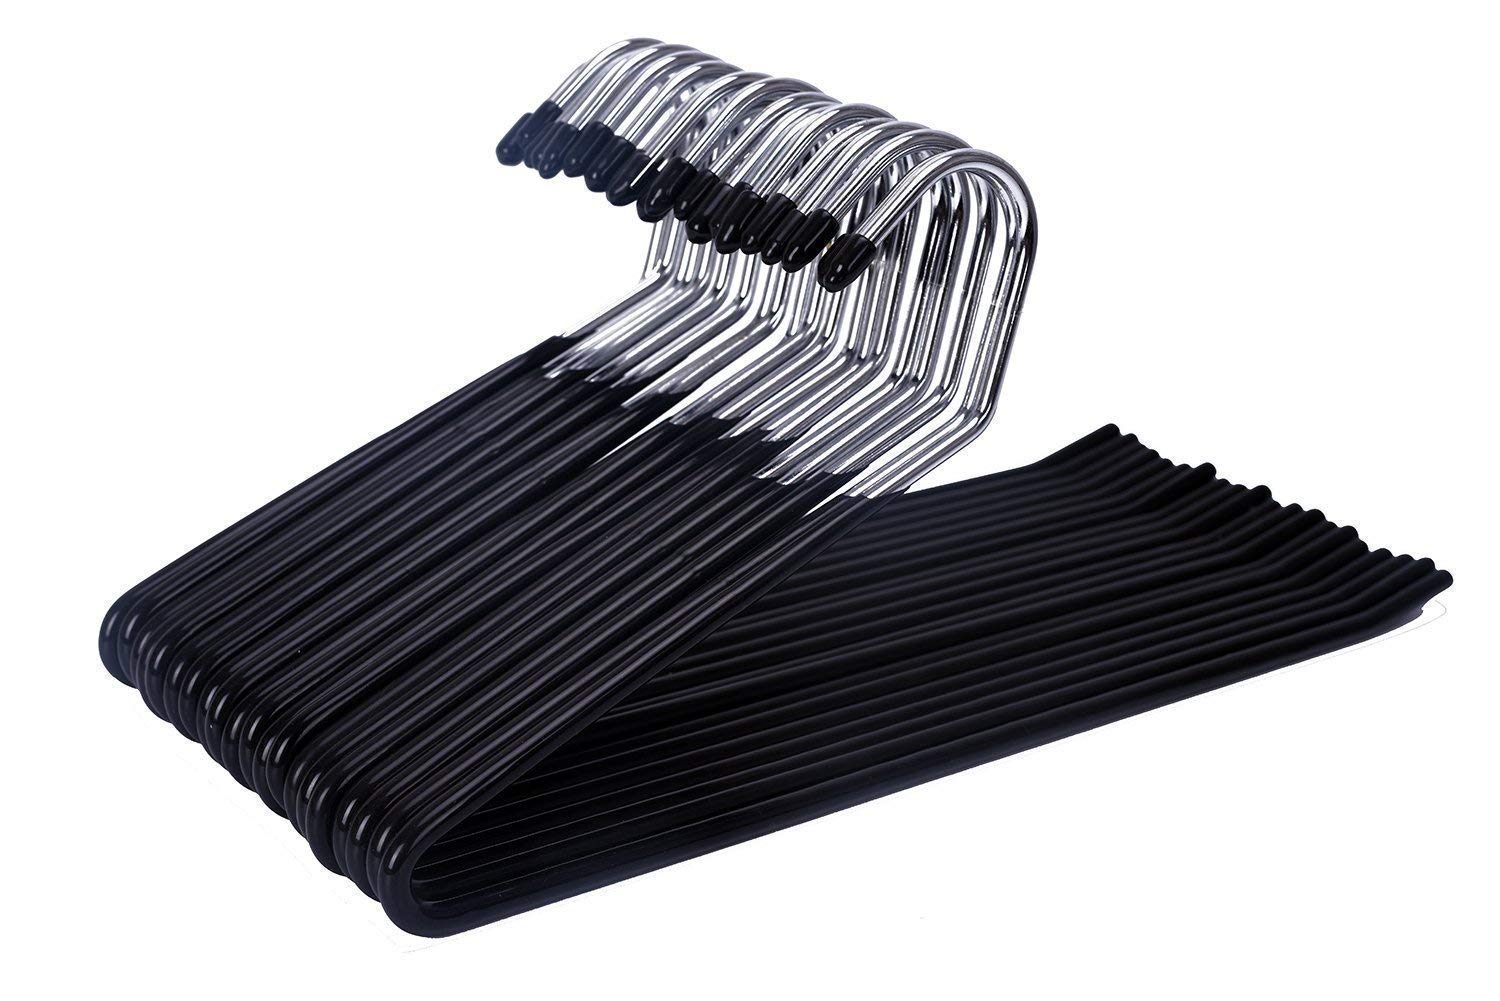 J.S Hanger - Open Ended Trouser Hangers. Anti-Slide Clothes Hangers with Chrome and Black Finish (20 hangers) J.S. Hanger Eisho QS01